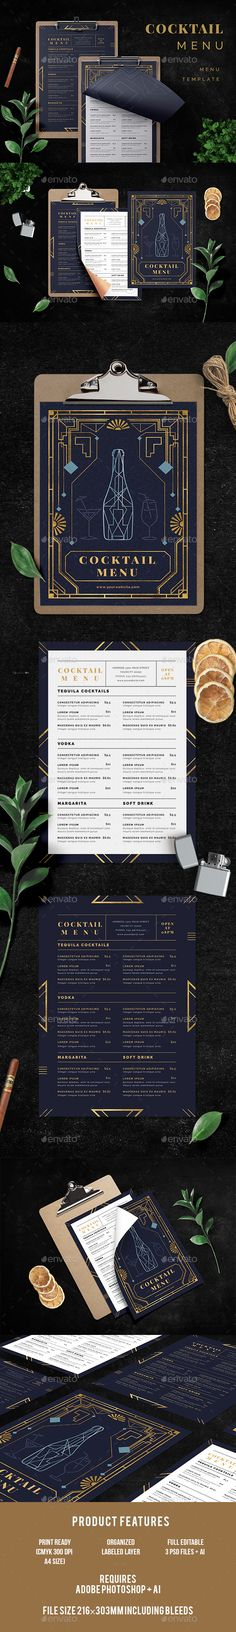 Cocktail Menu — Photoshop PSD #night out #alcohol • Download ➝ https://graphicriver.net/item/cocktail-menu/20383927?ref=pxcr